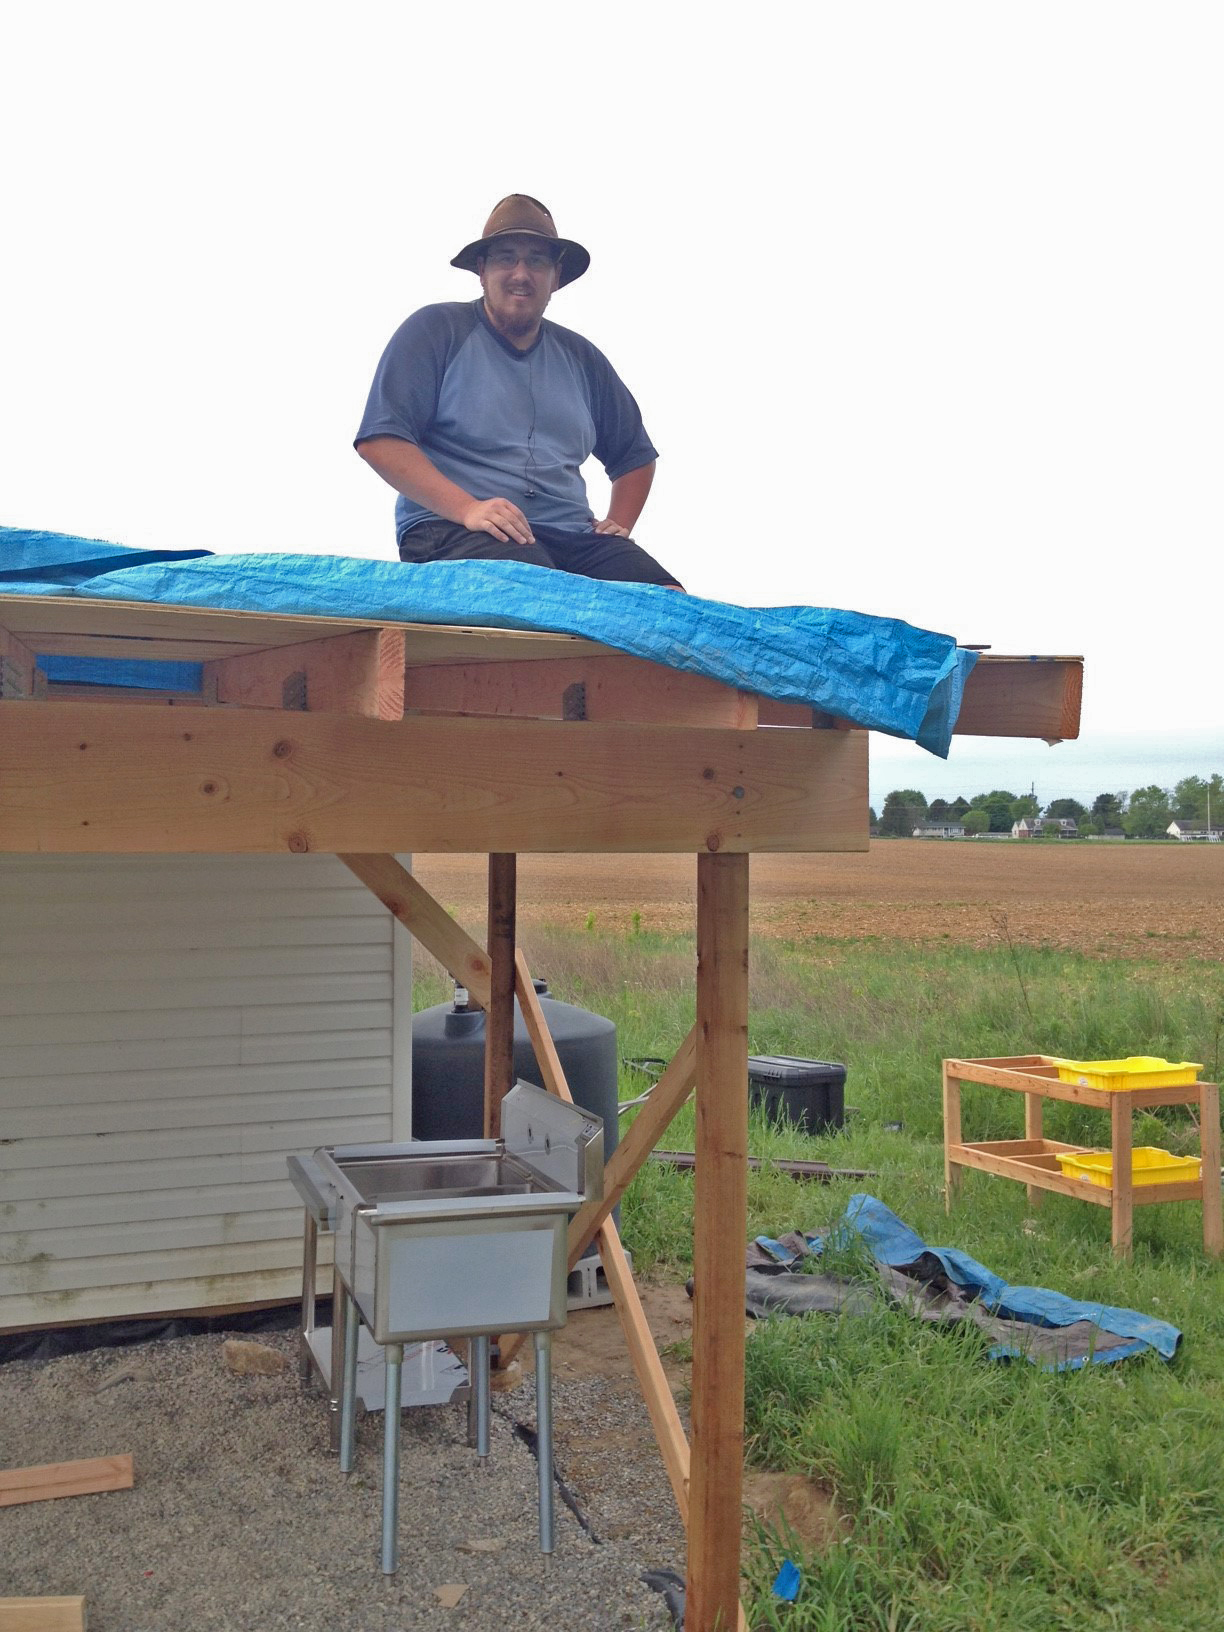 Brandon surveys the roof frame